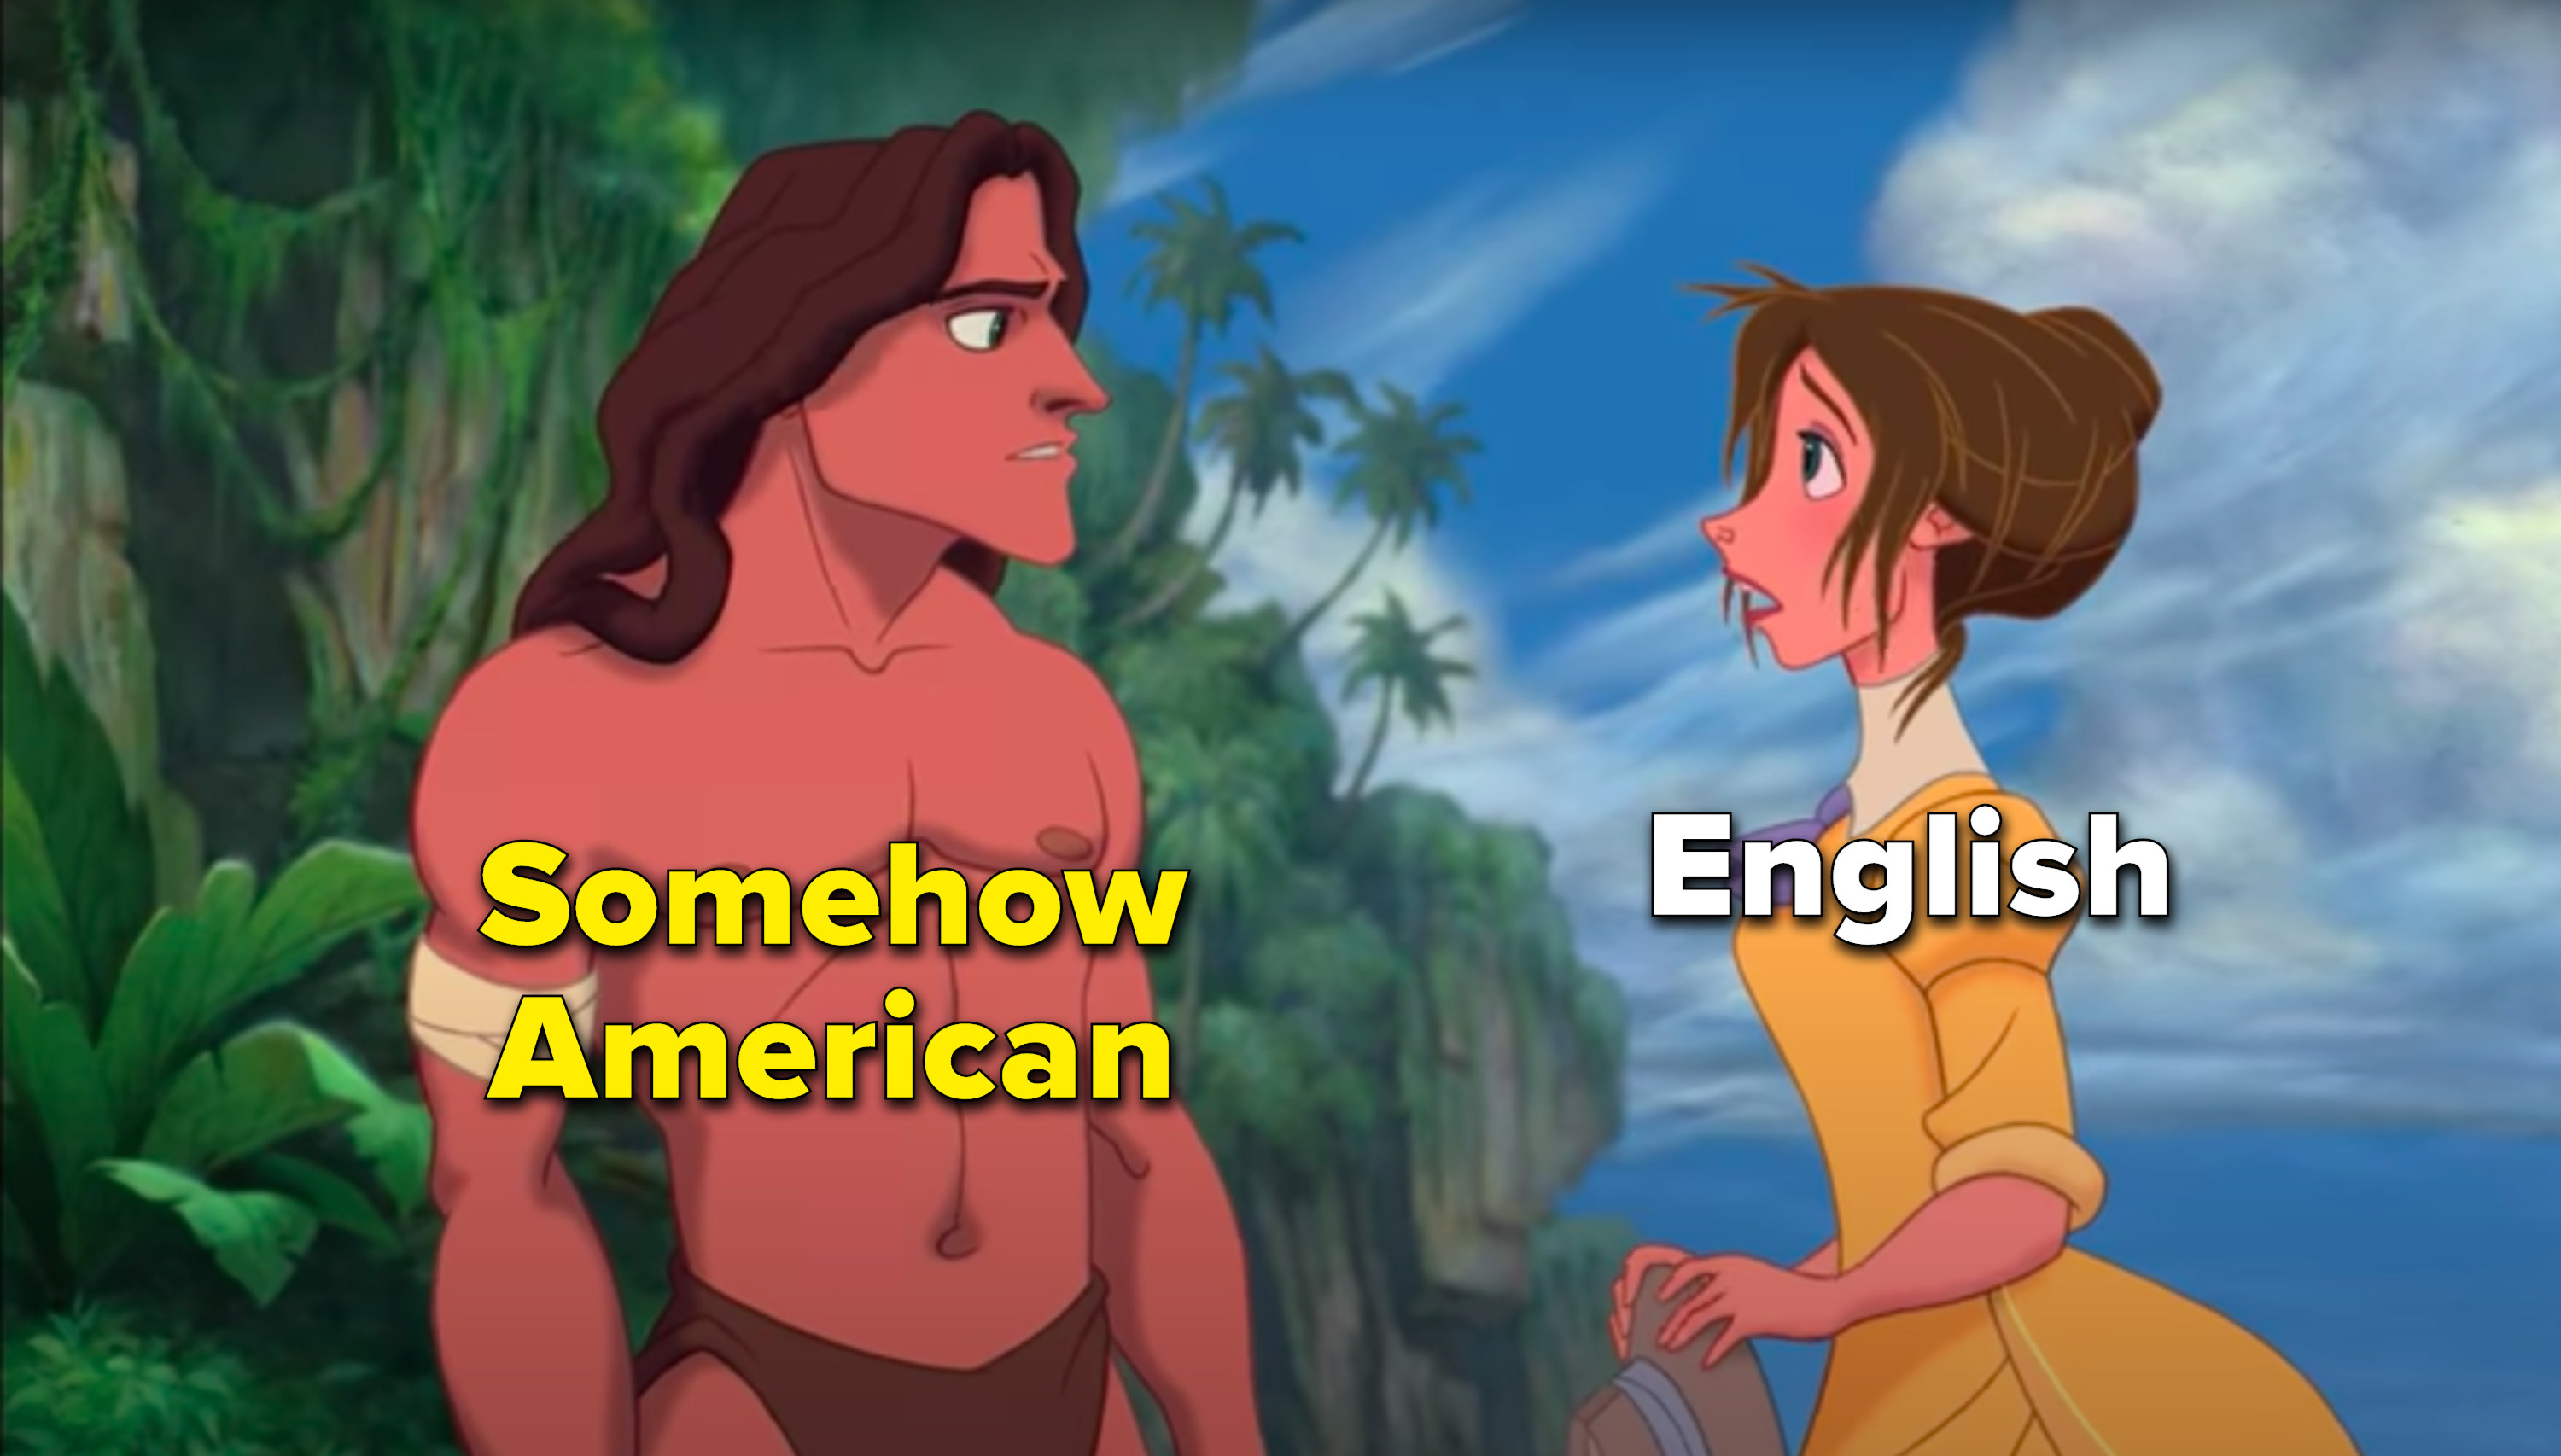 Tarzan is somehow American and Jane is English